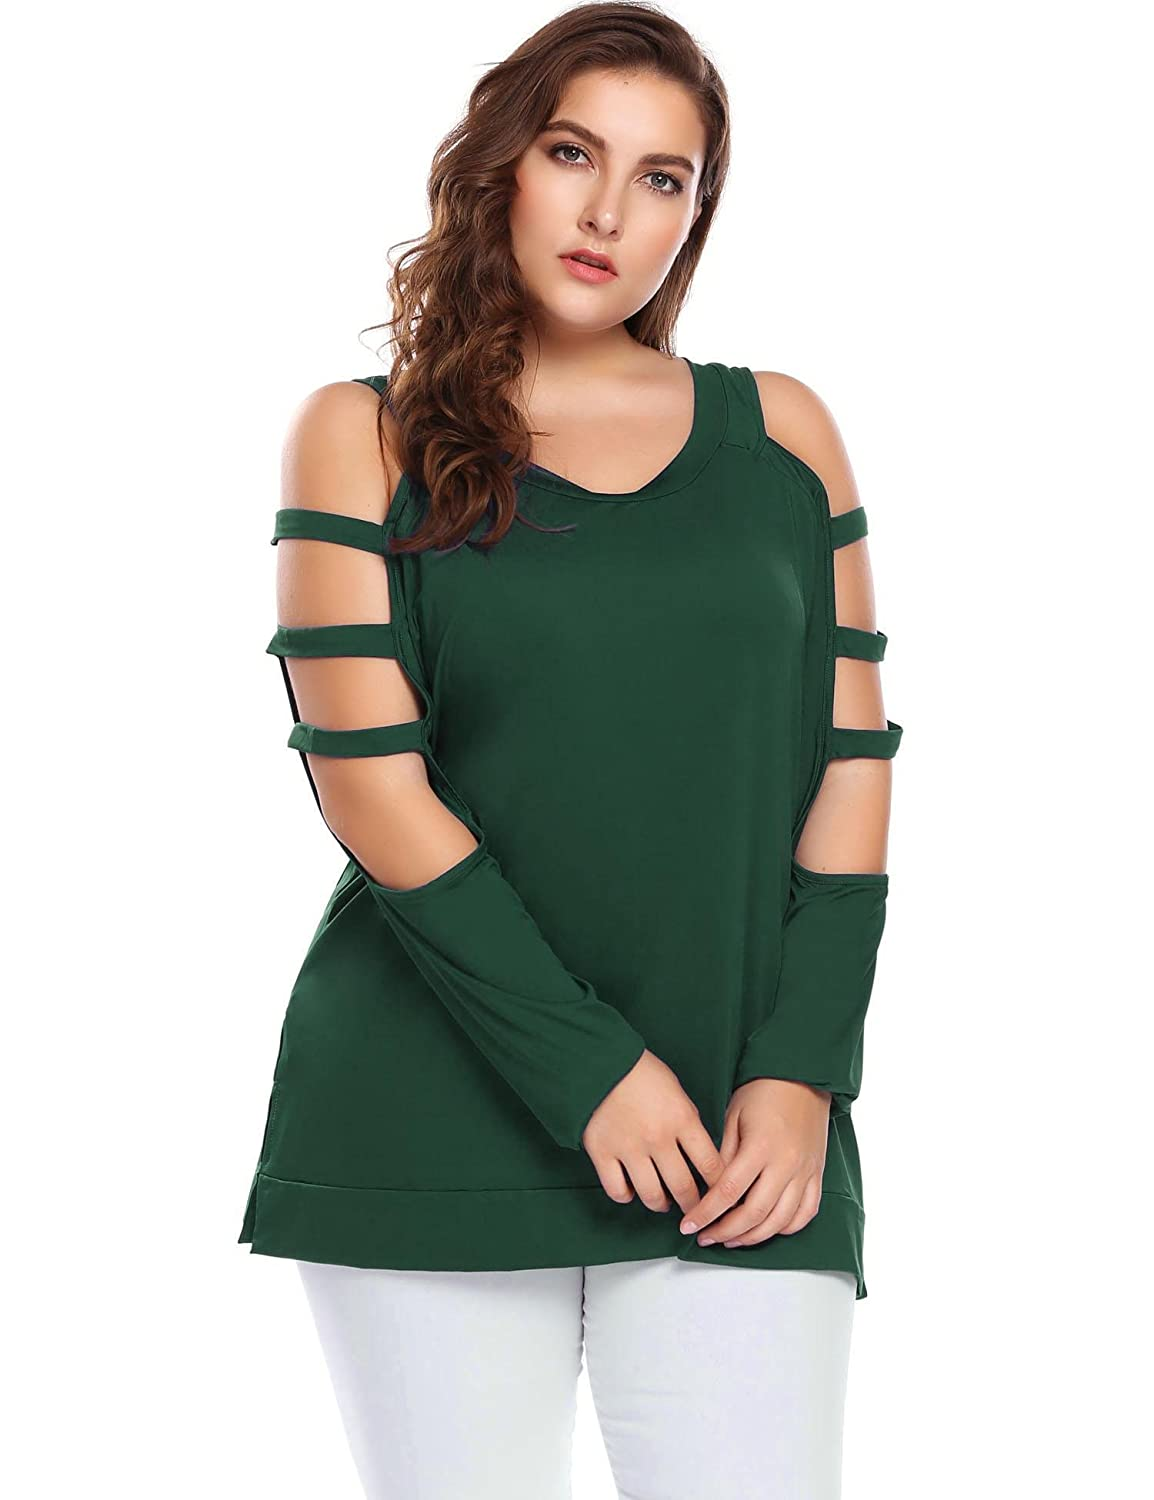 6423aa4589df IN'VOLAND Women's Plus Size Long Sleeve Cut Out Cold Shoulder Slit Pullover  Tops Casual Blouse at Amazon Women's Clothing store: